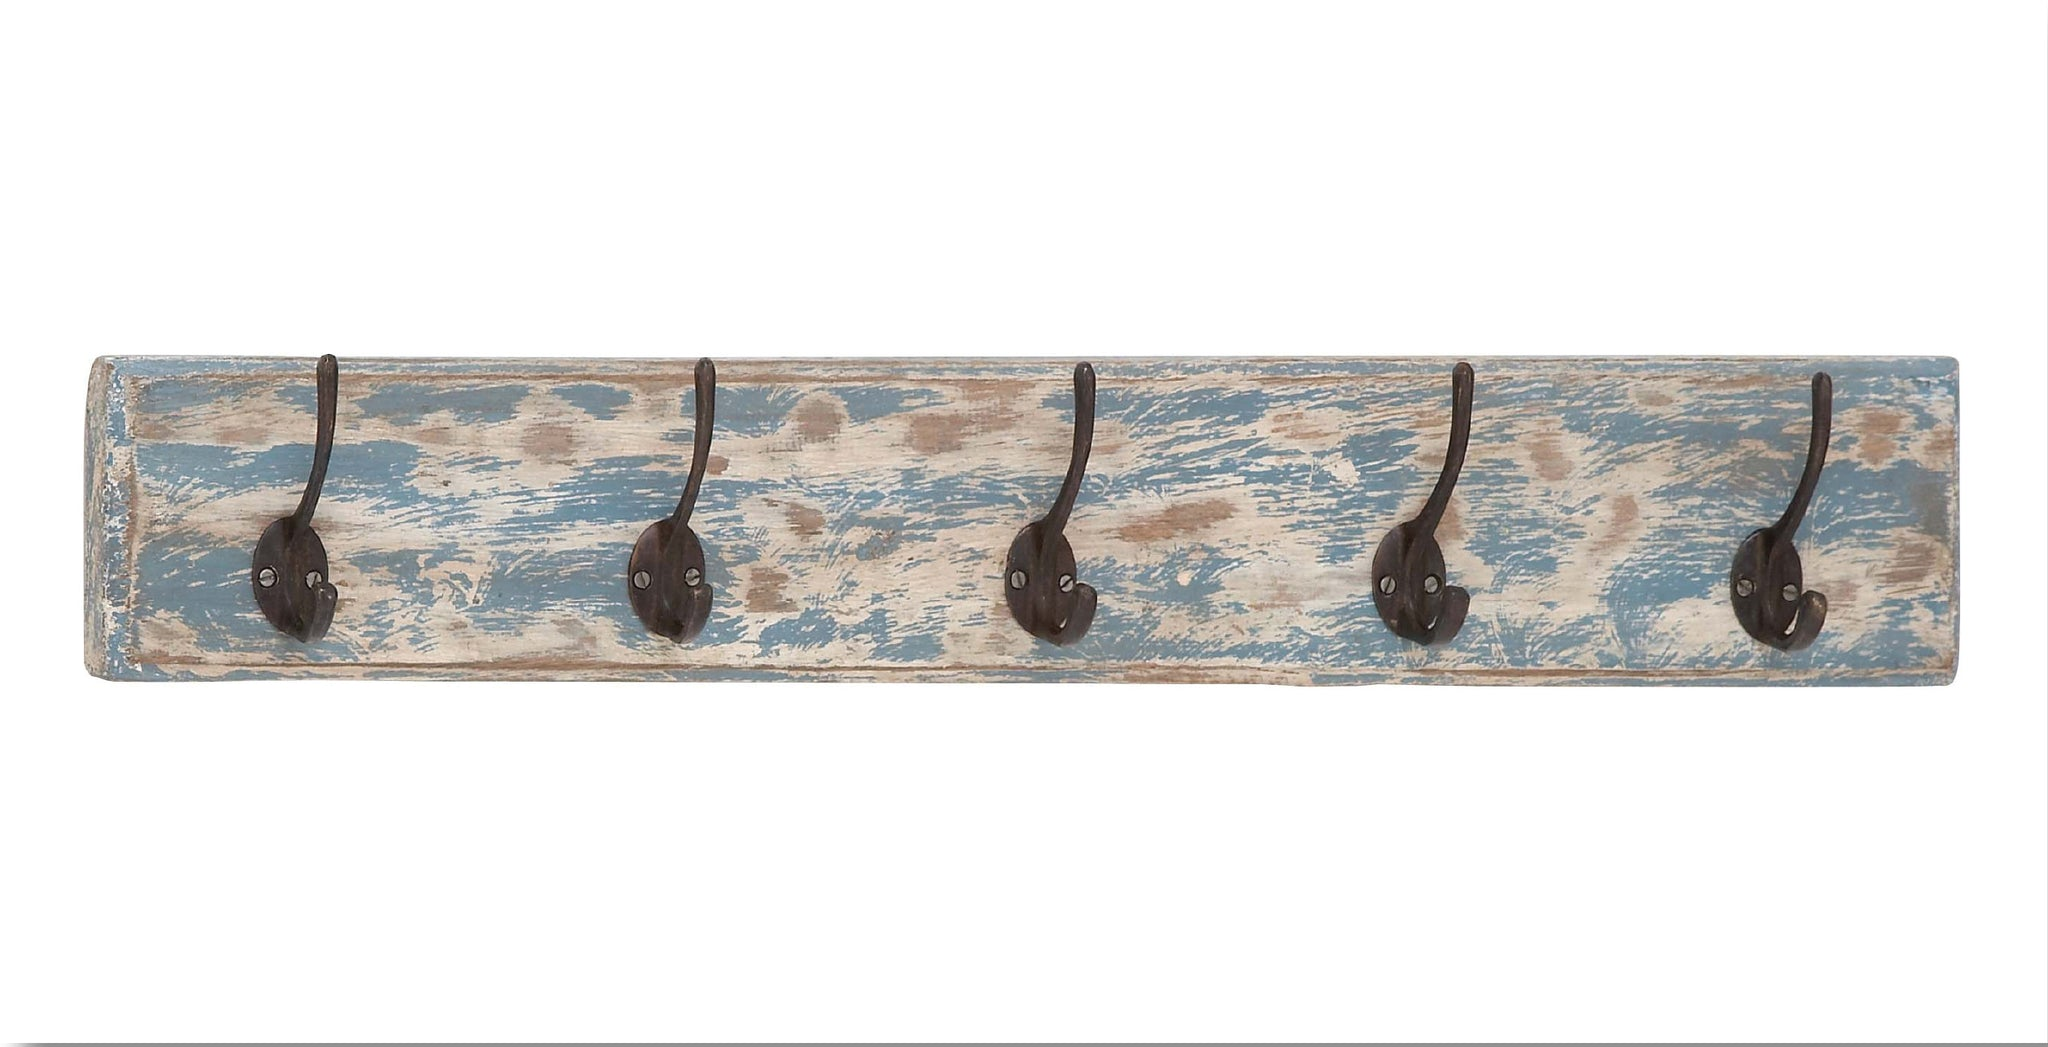 Handsomely Distressed Wood & Metal Wall Hook!